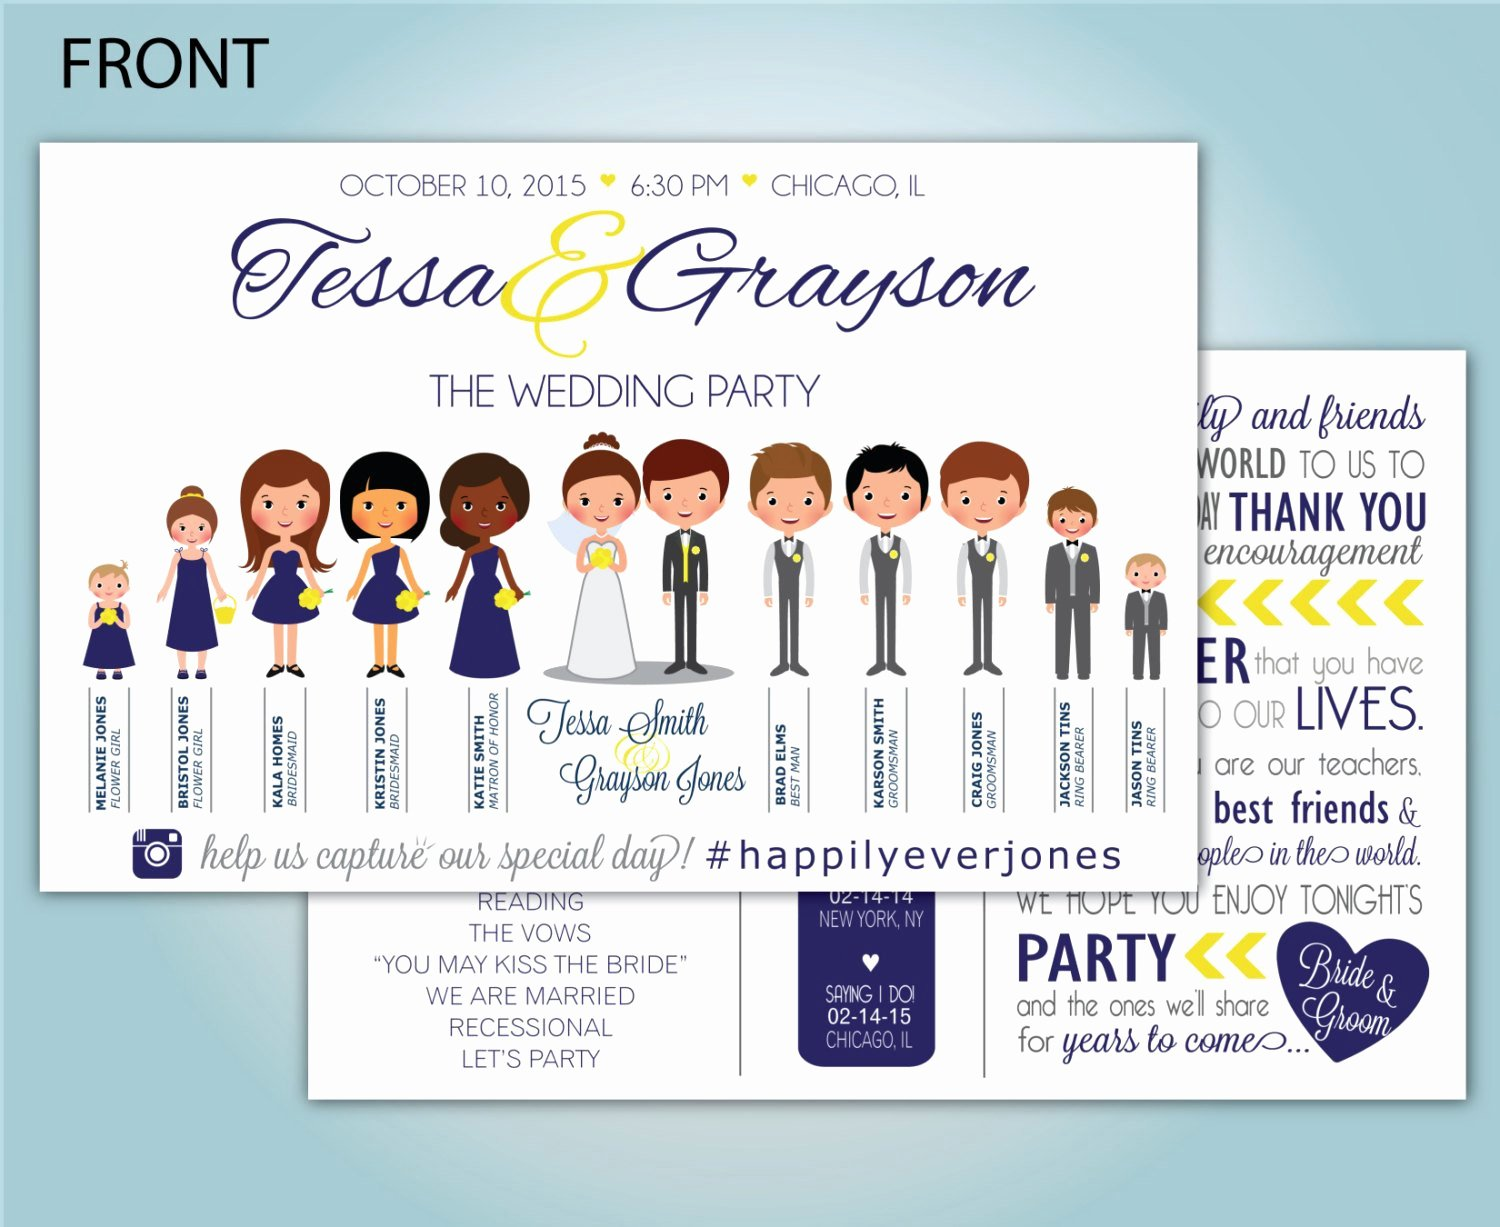 Custom People Wedding Program Illustrated Wedding Party